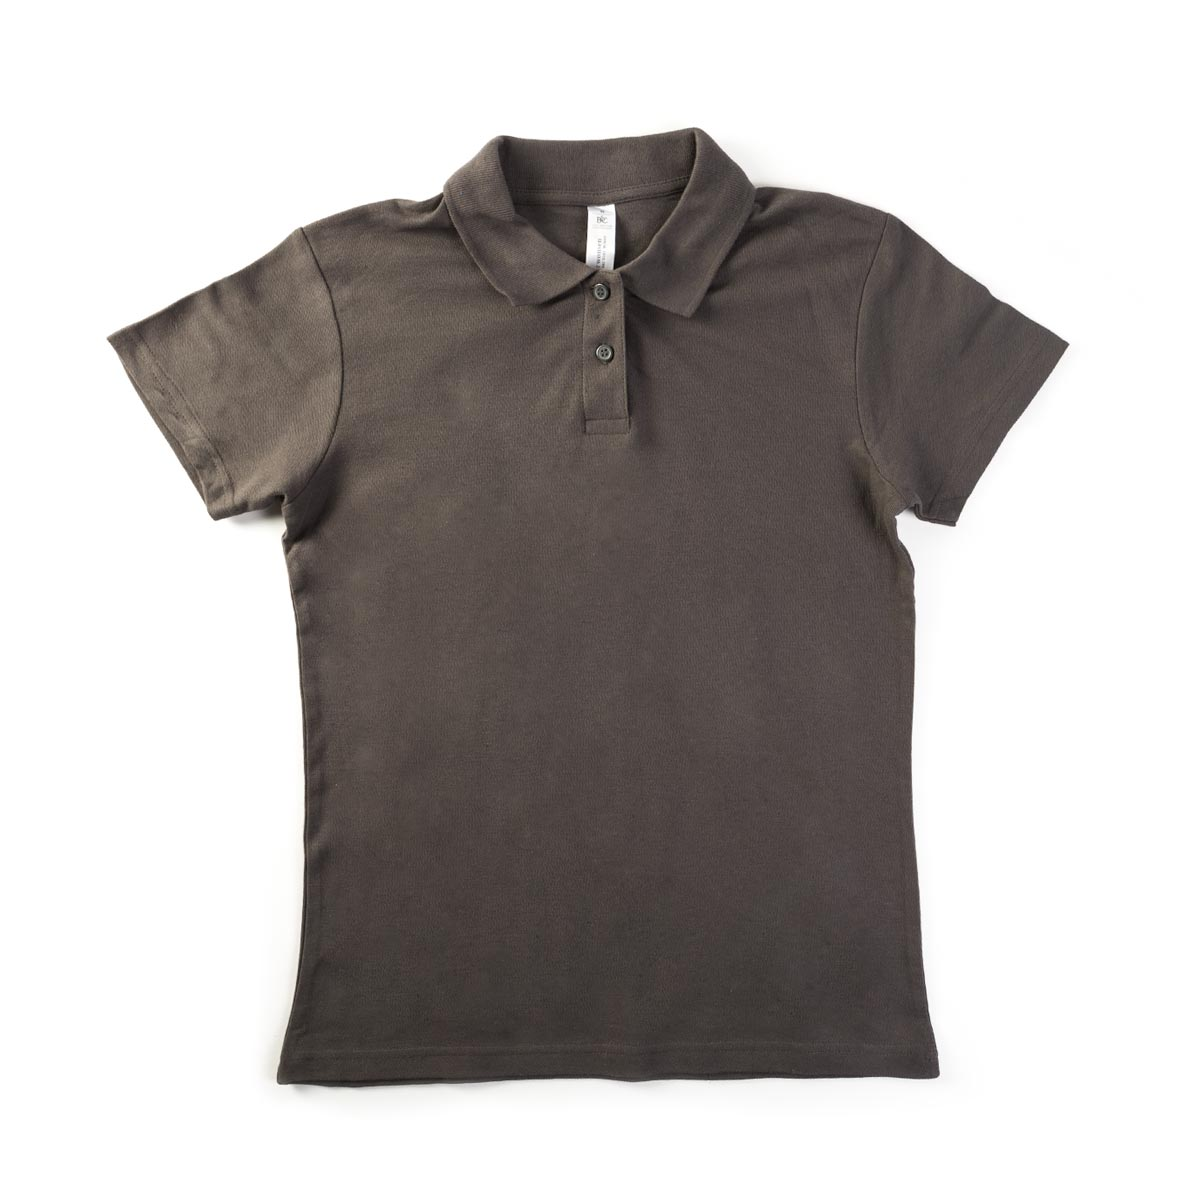 B&C Ladies Piqué Polo Shirts